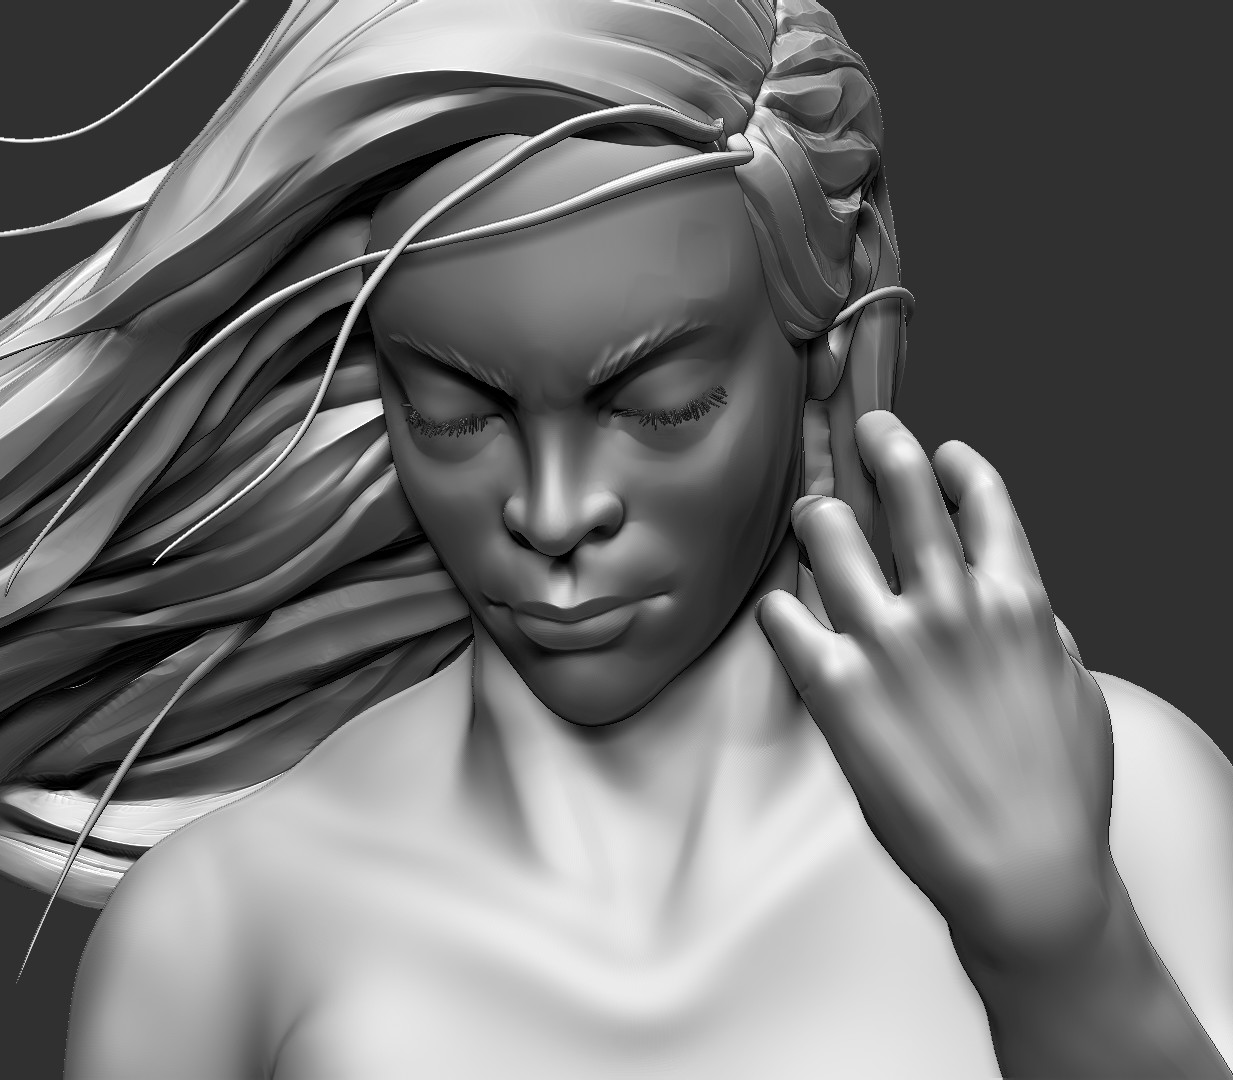 sculpting details